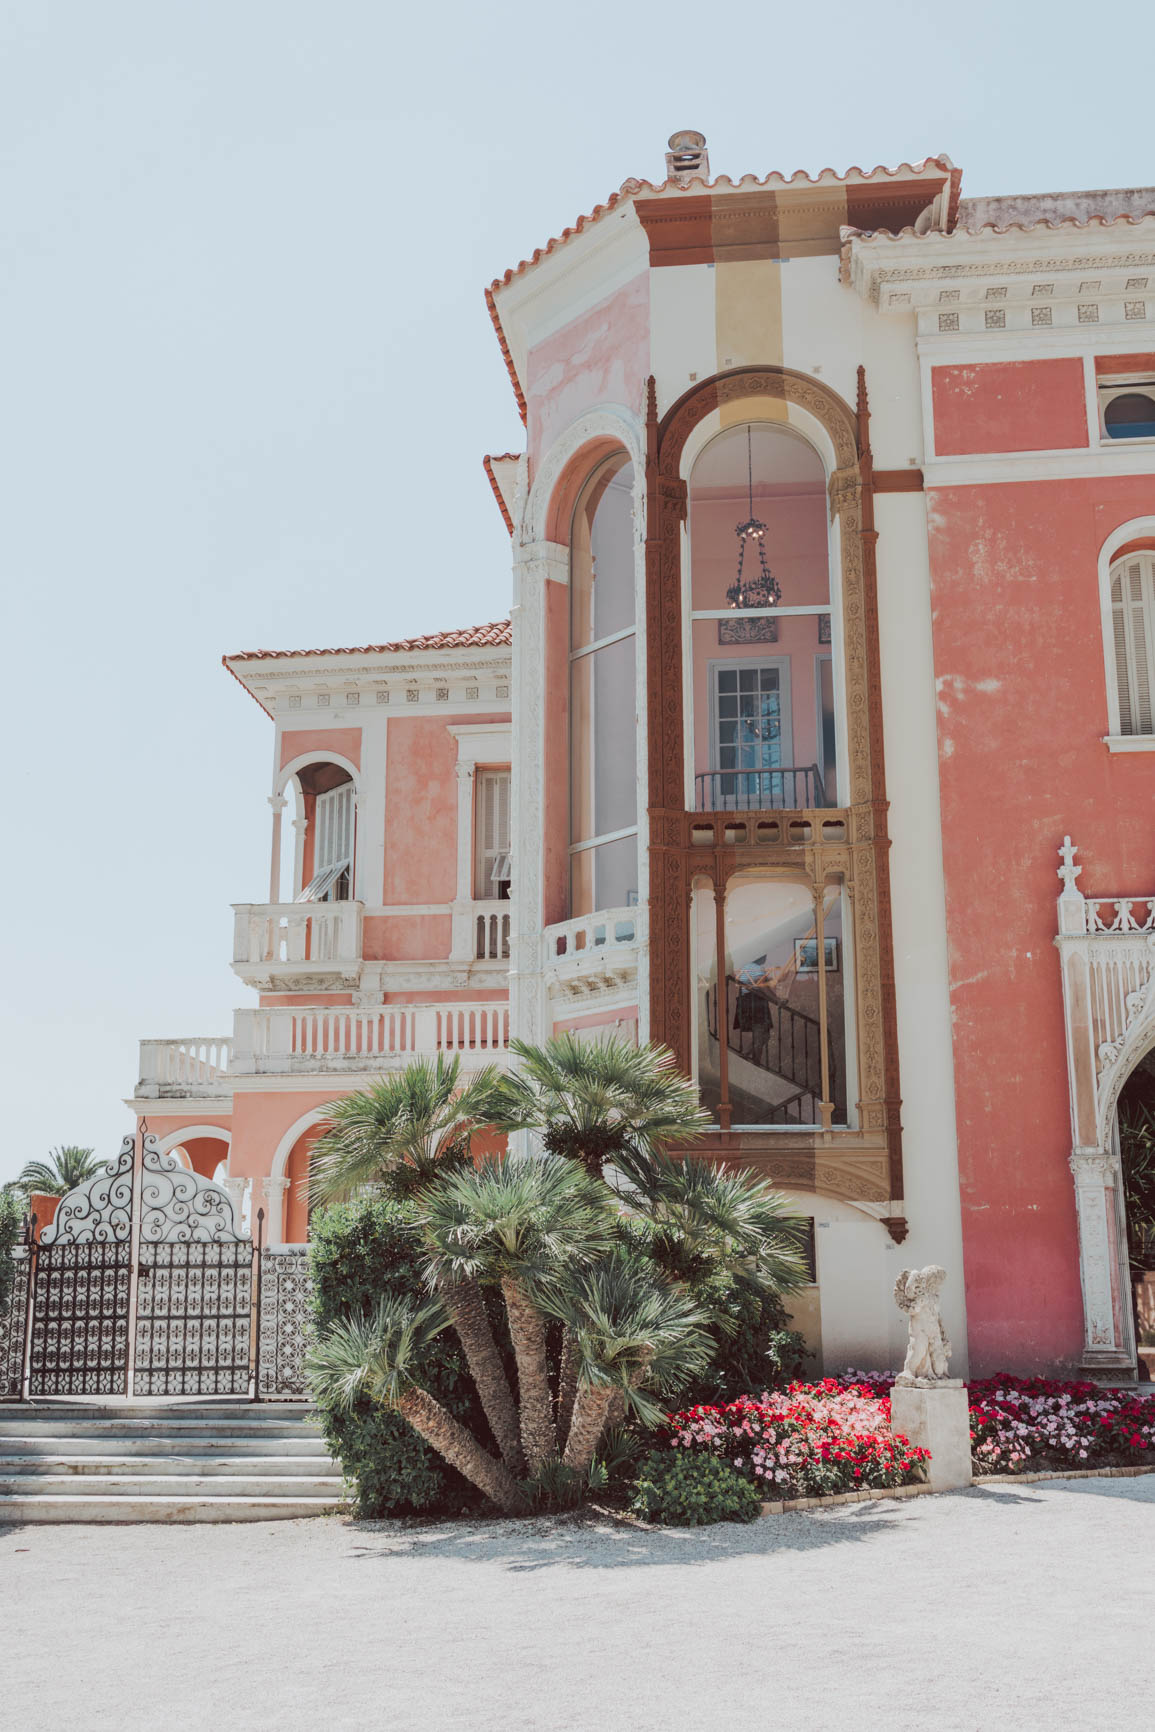 Villa Ephrussi de Rothschild  Cote d'Azur  Itinerary - 10 Days in Provence Road Trip